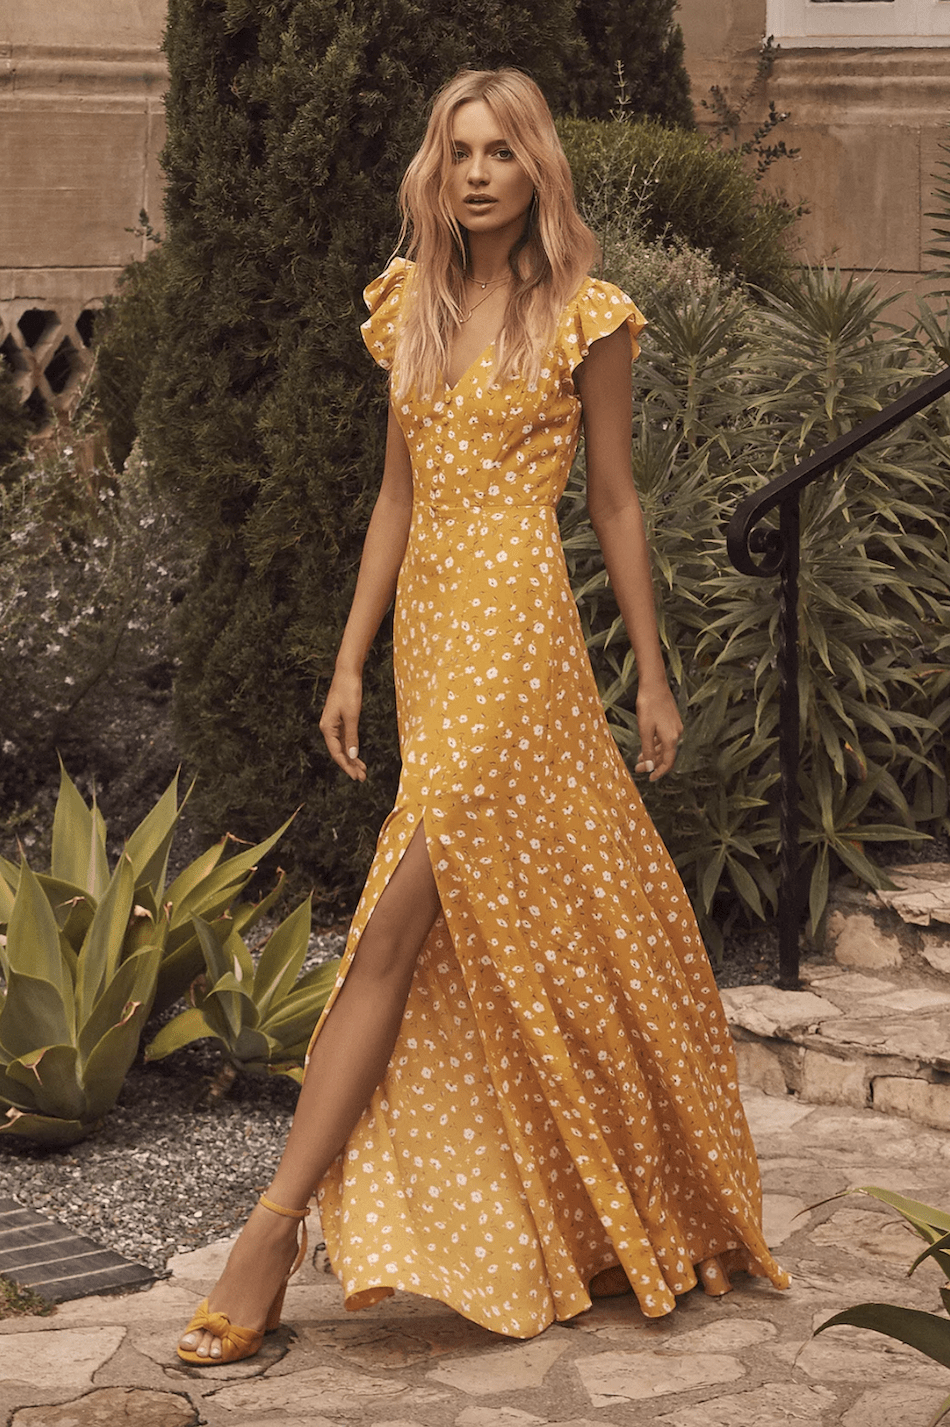 Positano Outfits Cute Dresses Fresh Picked Mustard Yellow Floral Print Backless Maxi Dress